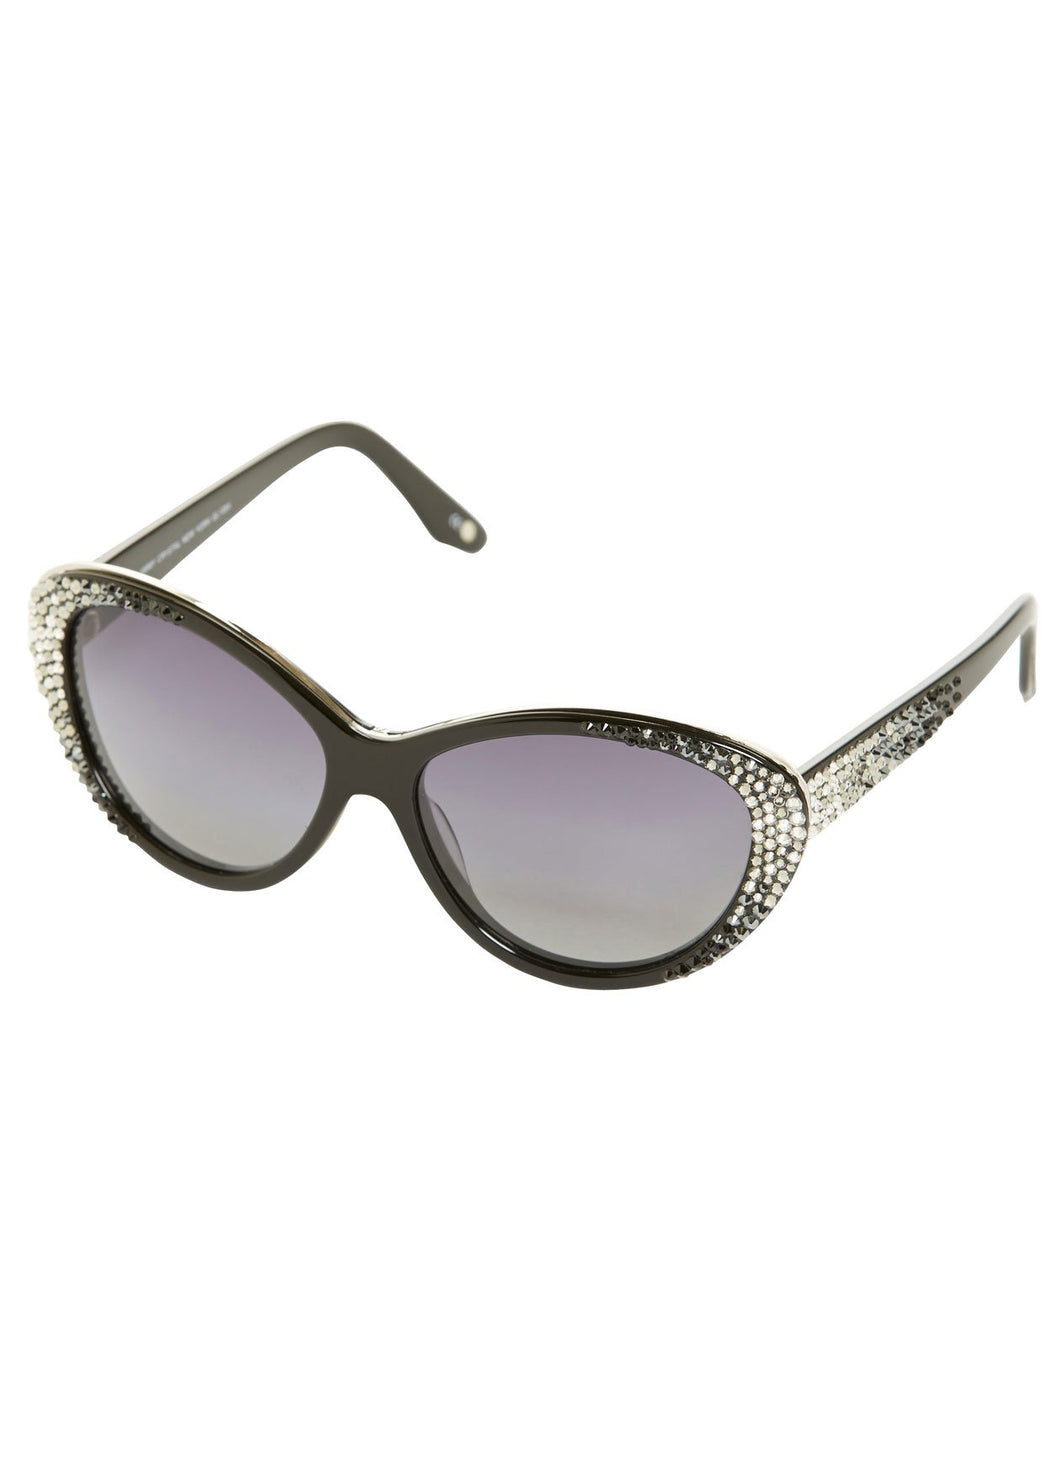 Luly Yang | Swarovski Crystal-Accented Ombré Cat-eye Sunglasses